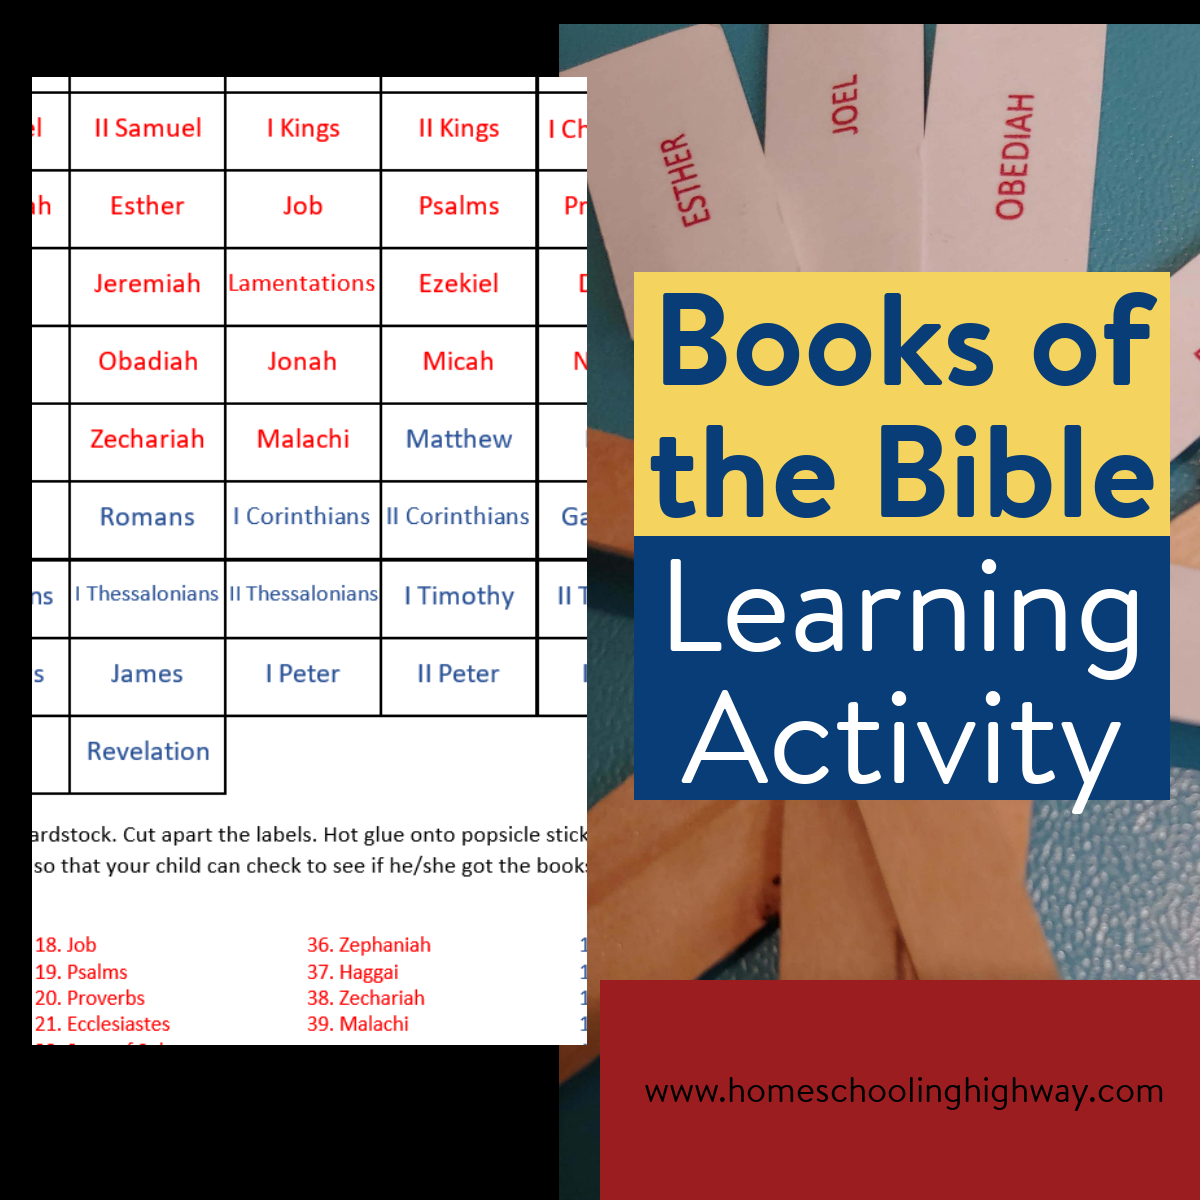 Popsicle Stick Activity Help Your Child Learn The Books